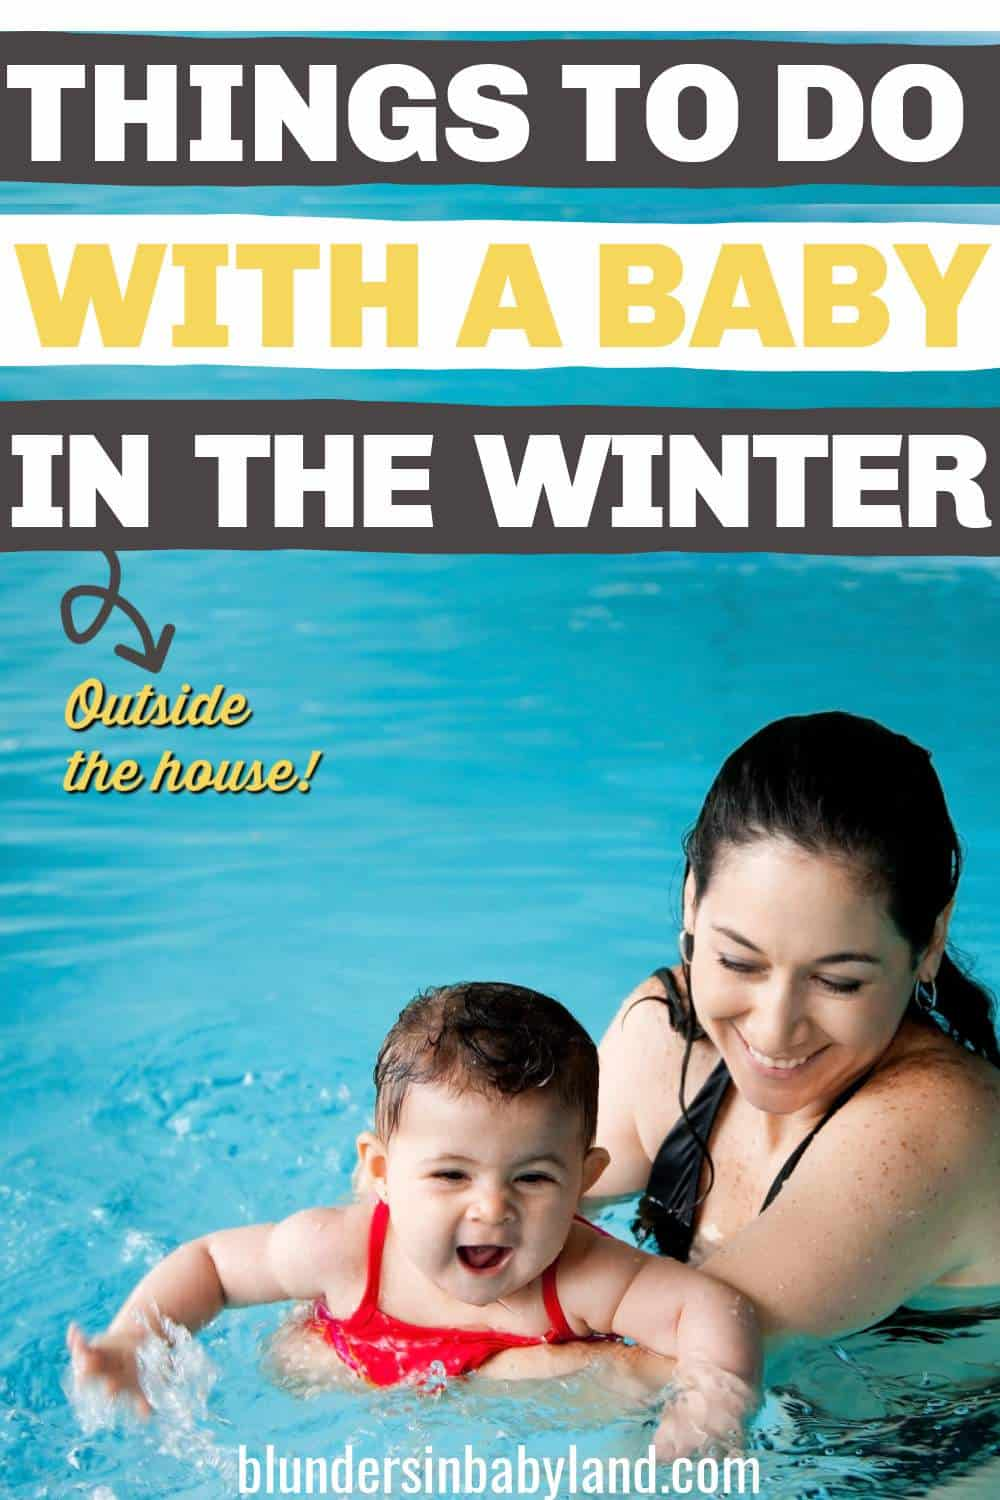 Things to Do with a Baby in the Winter -Places to Go with a Baby